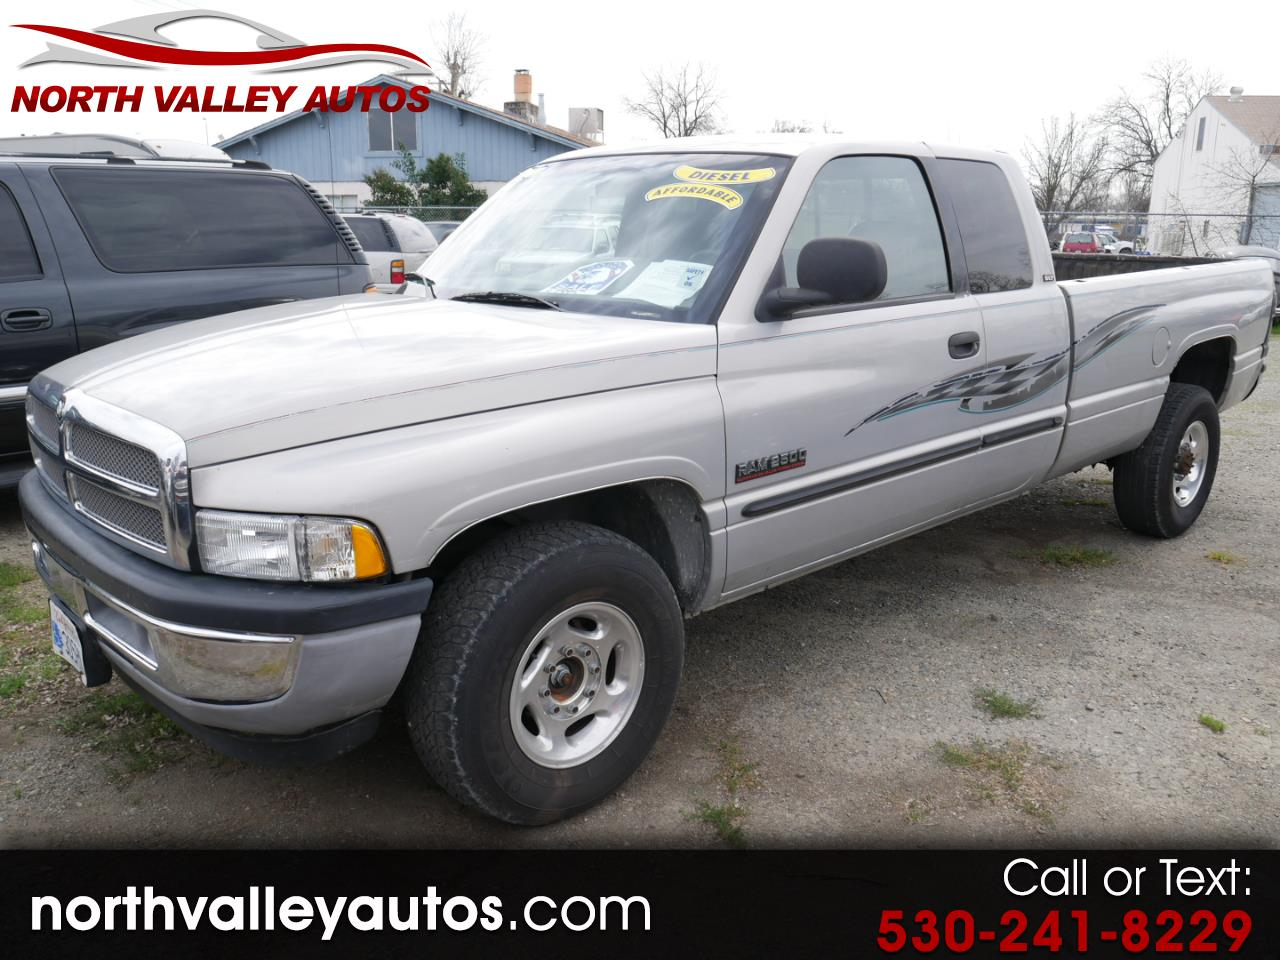 2001 Dodge Ram 2500 Quad Cab Long Bed 2WD